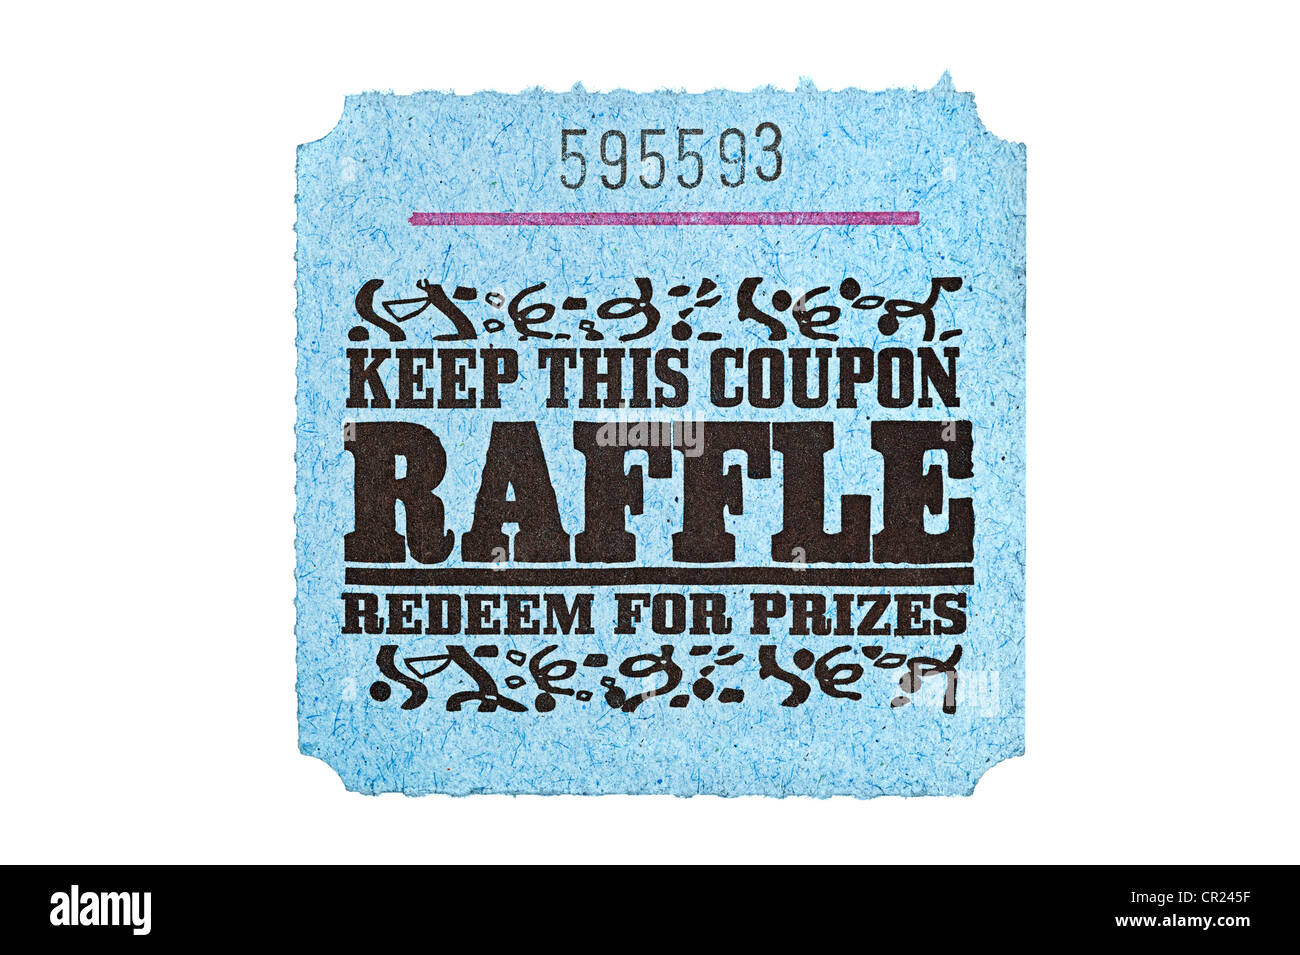 a classic raffle drawing ticket stub for prize redemption stock